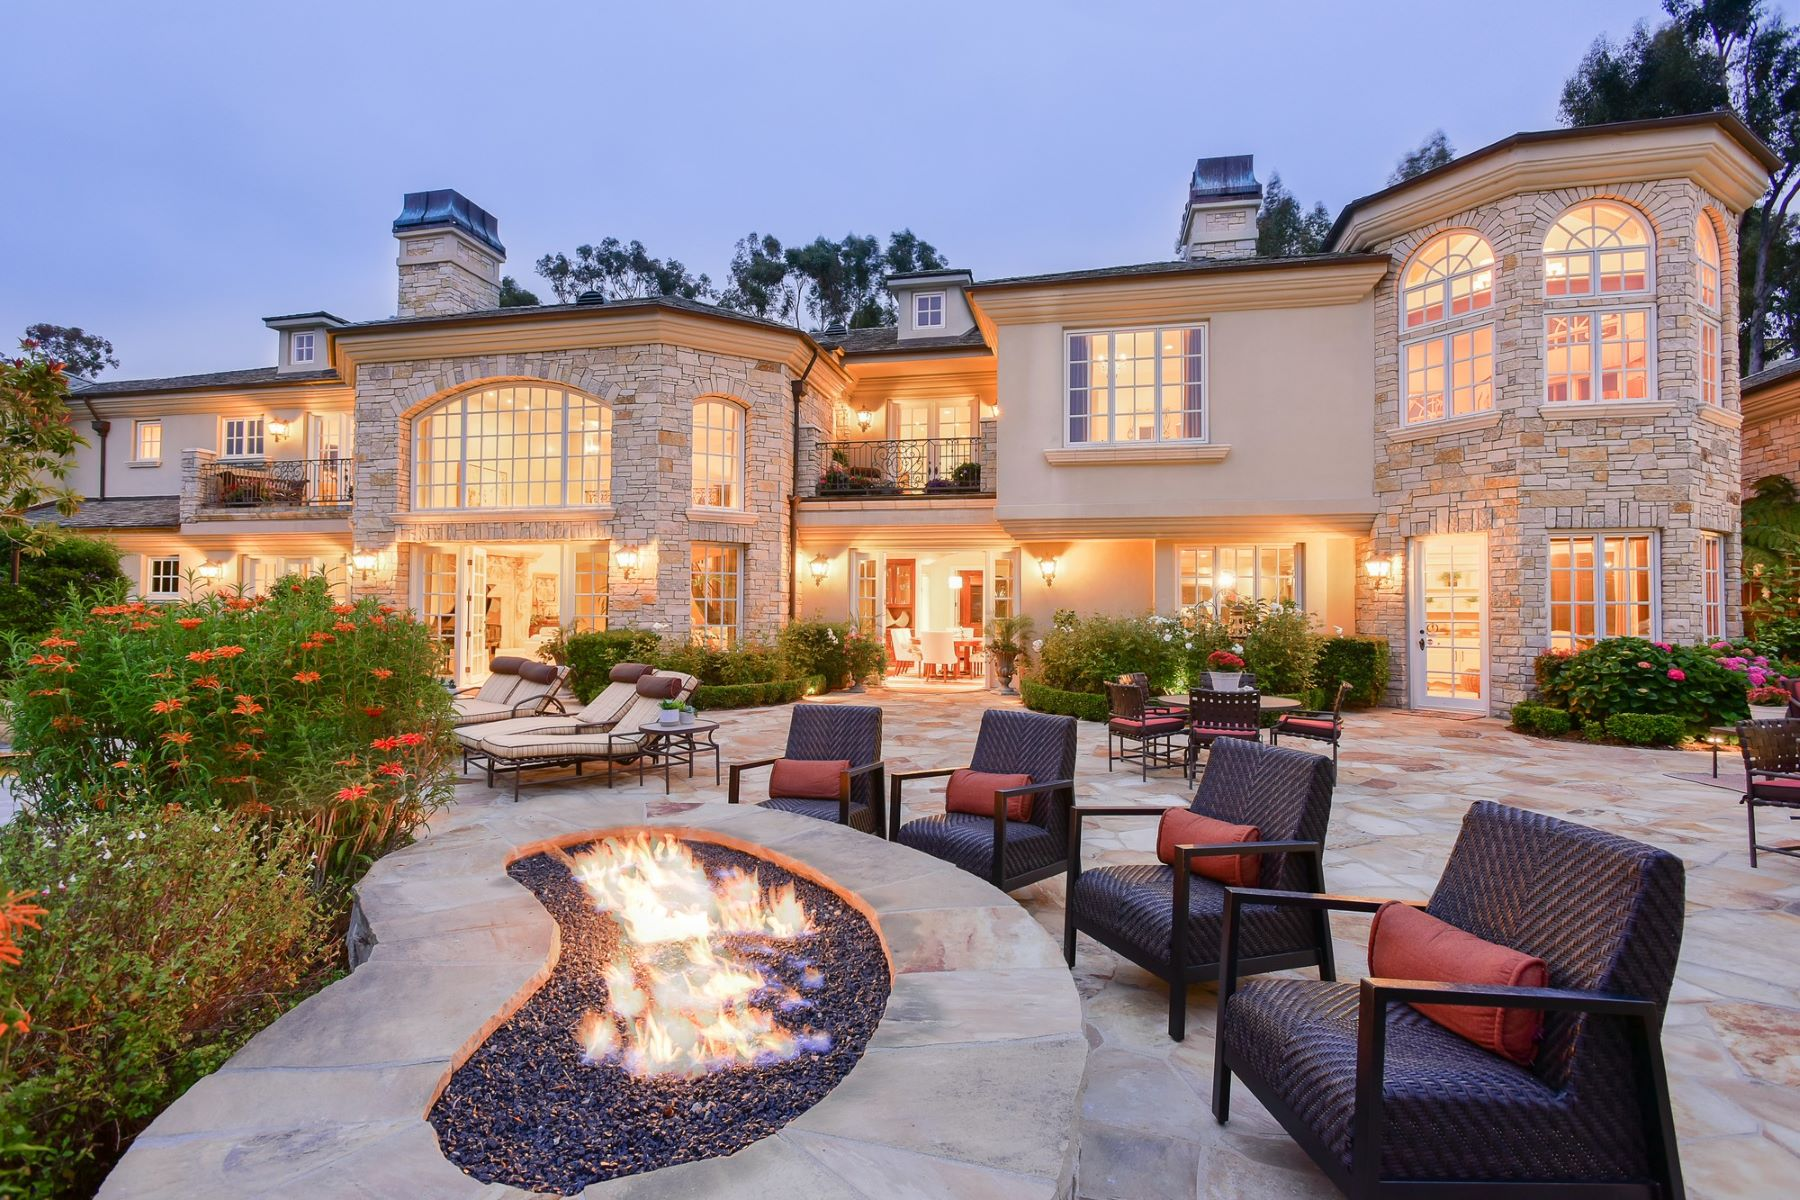 Single Family Homes for Sale at 6397 Clubhouse Drive Rancho Santa Fe, California 92067 United States